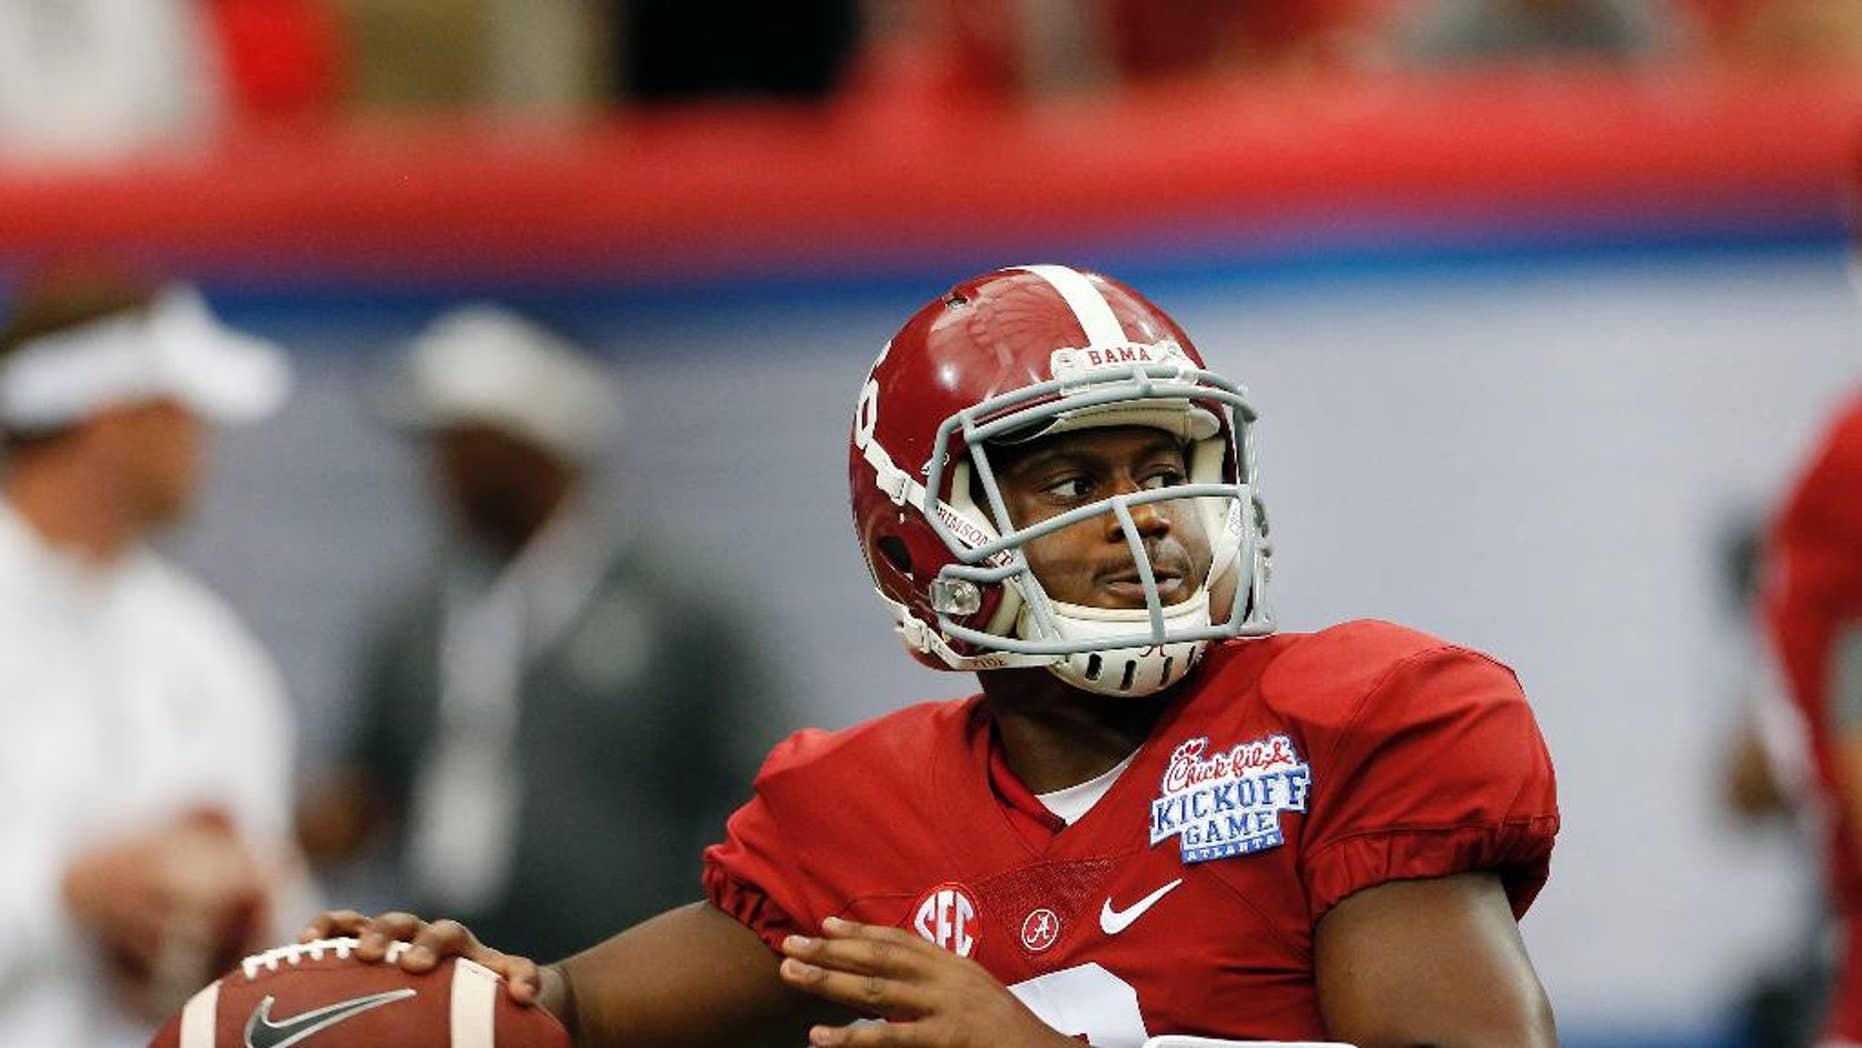 Alabama quarterback Blake Sims (6) warms up before an NCAA college football game against West Virginia Saturday, Aug. 30, 2014, in Atlanta.  (AP Photo/John Bazemore)